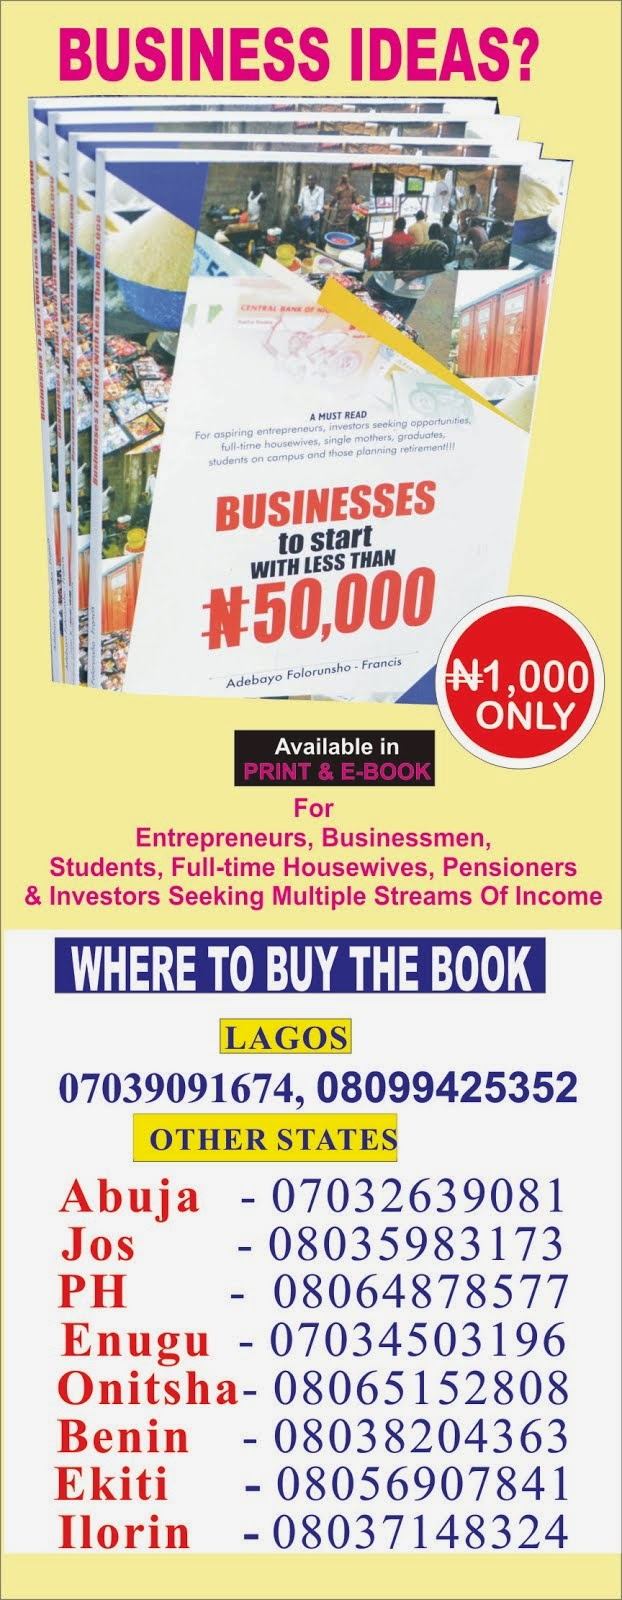 Business To Start With Less Than N50,000